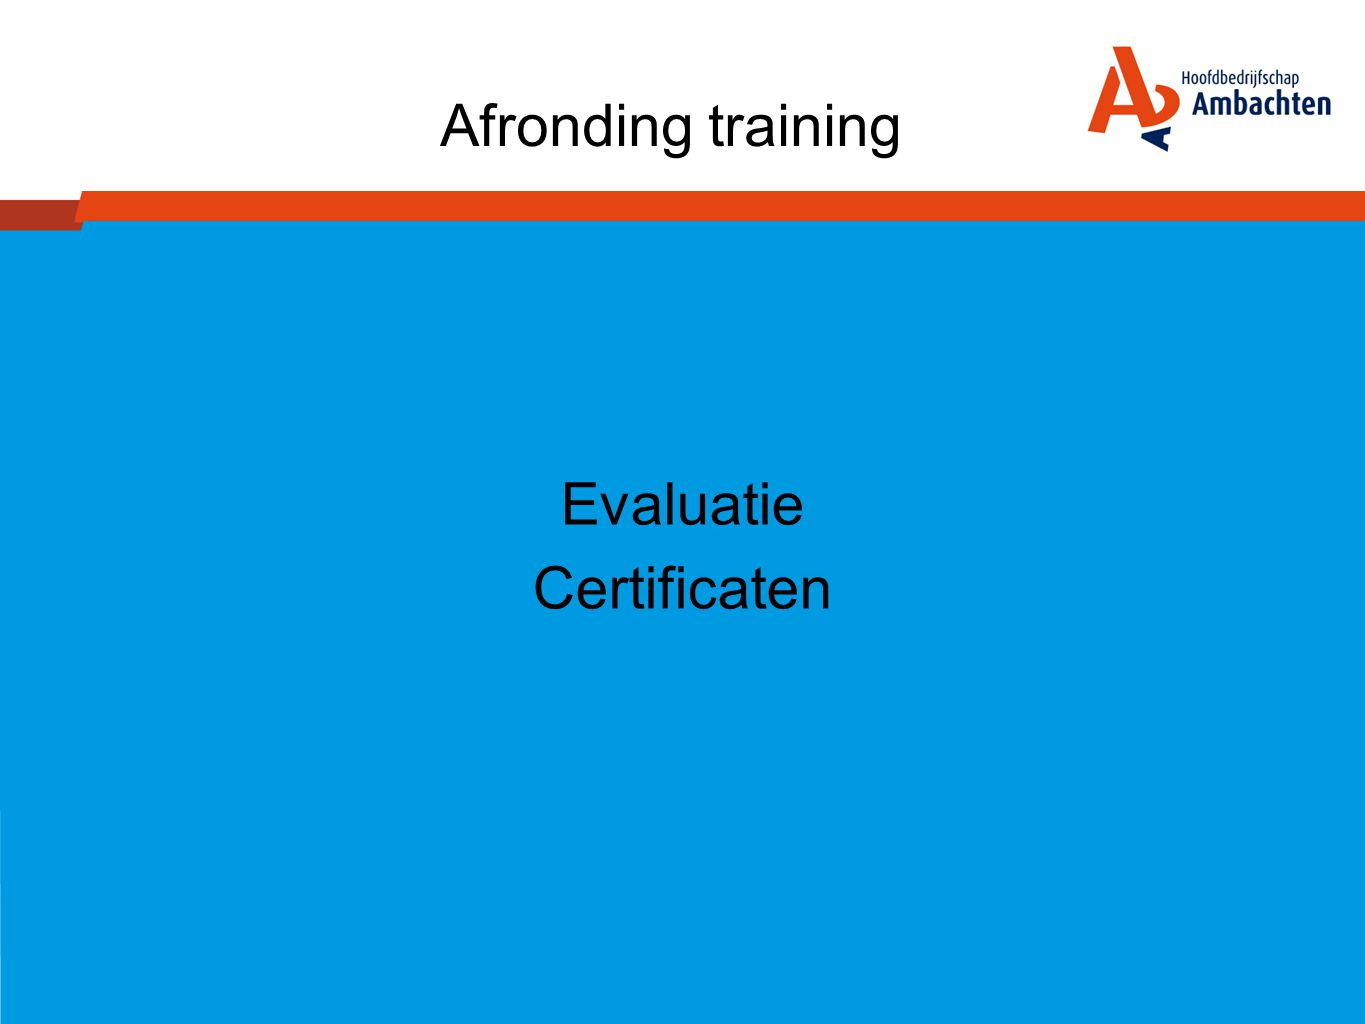 Evaluatie Certificaten